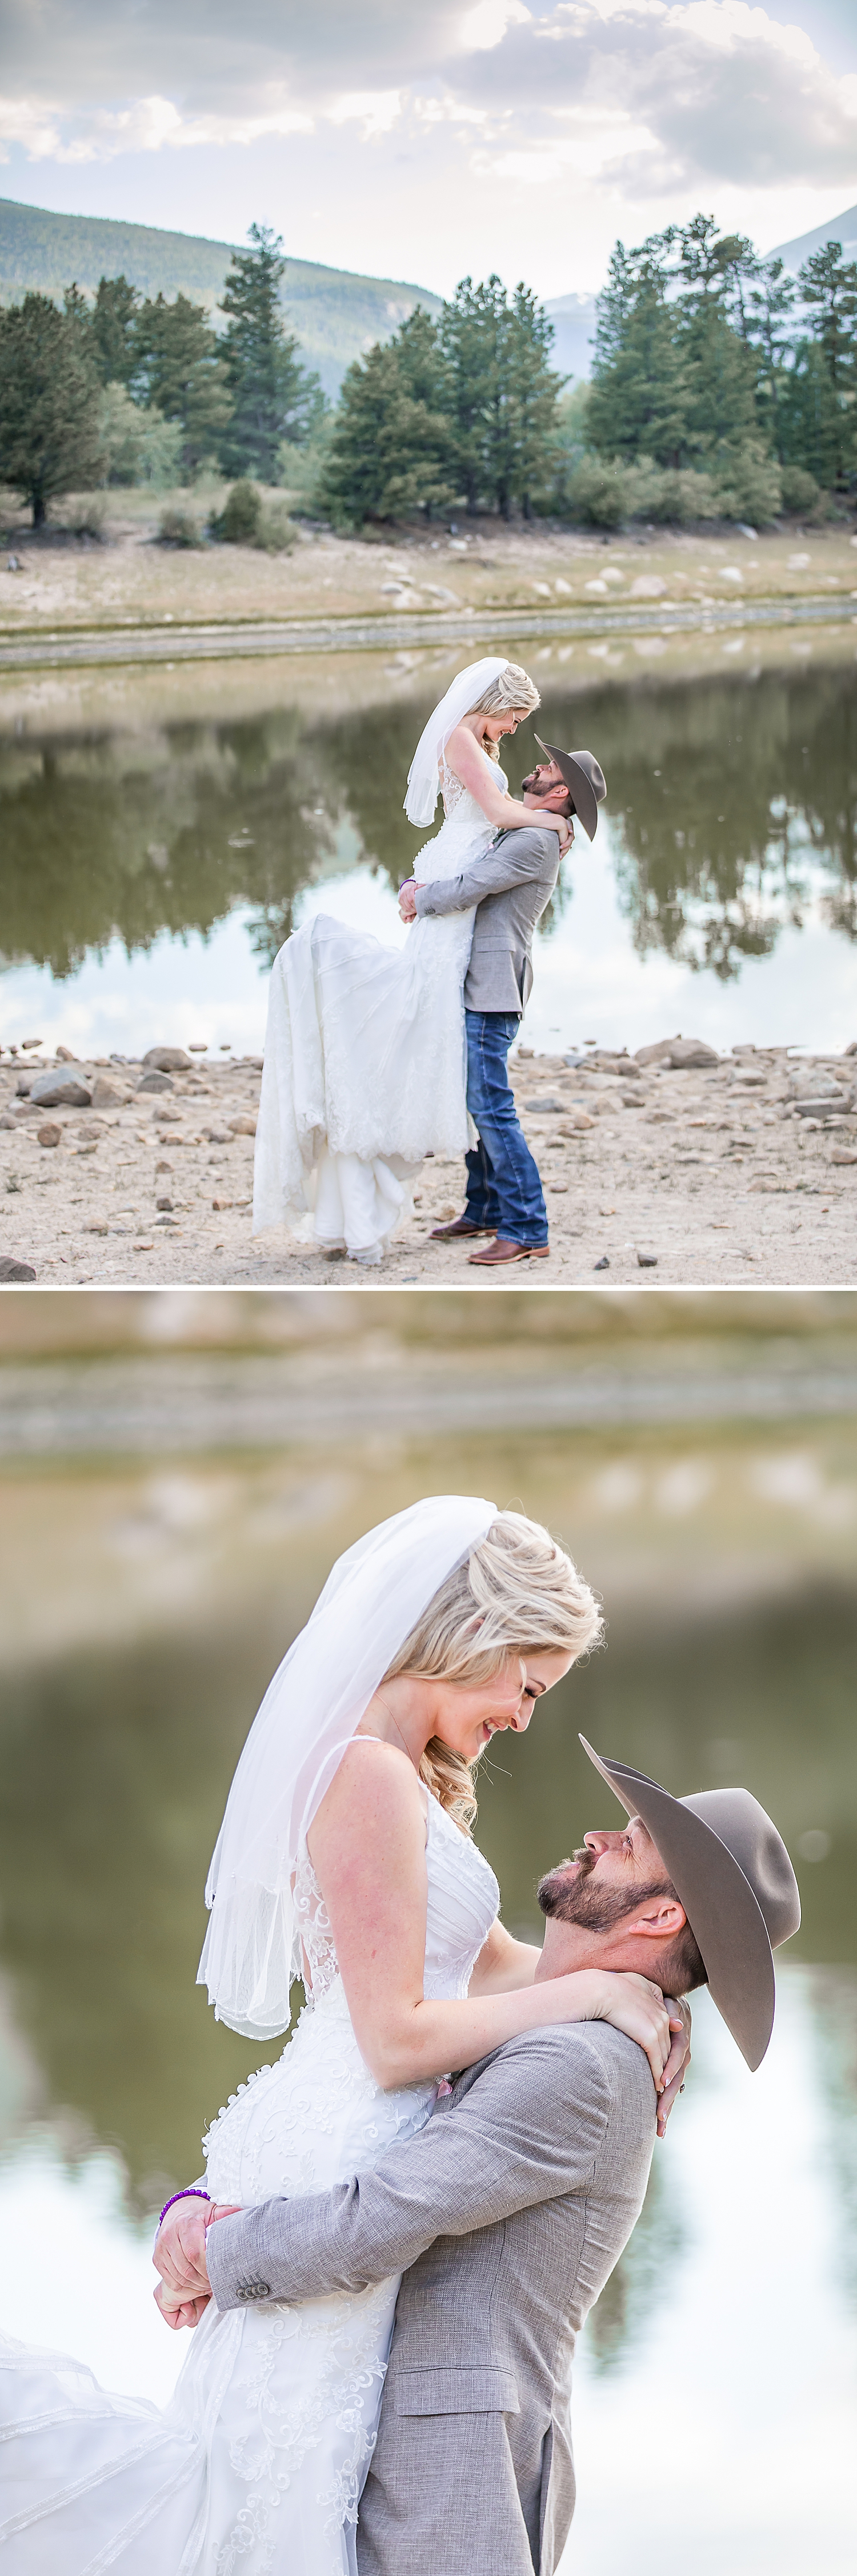 Carly-Barton-Photography-Rocky-Mountain-National-Park-Estes-Park-Wedding-Elopement_0037.jpg